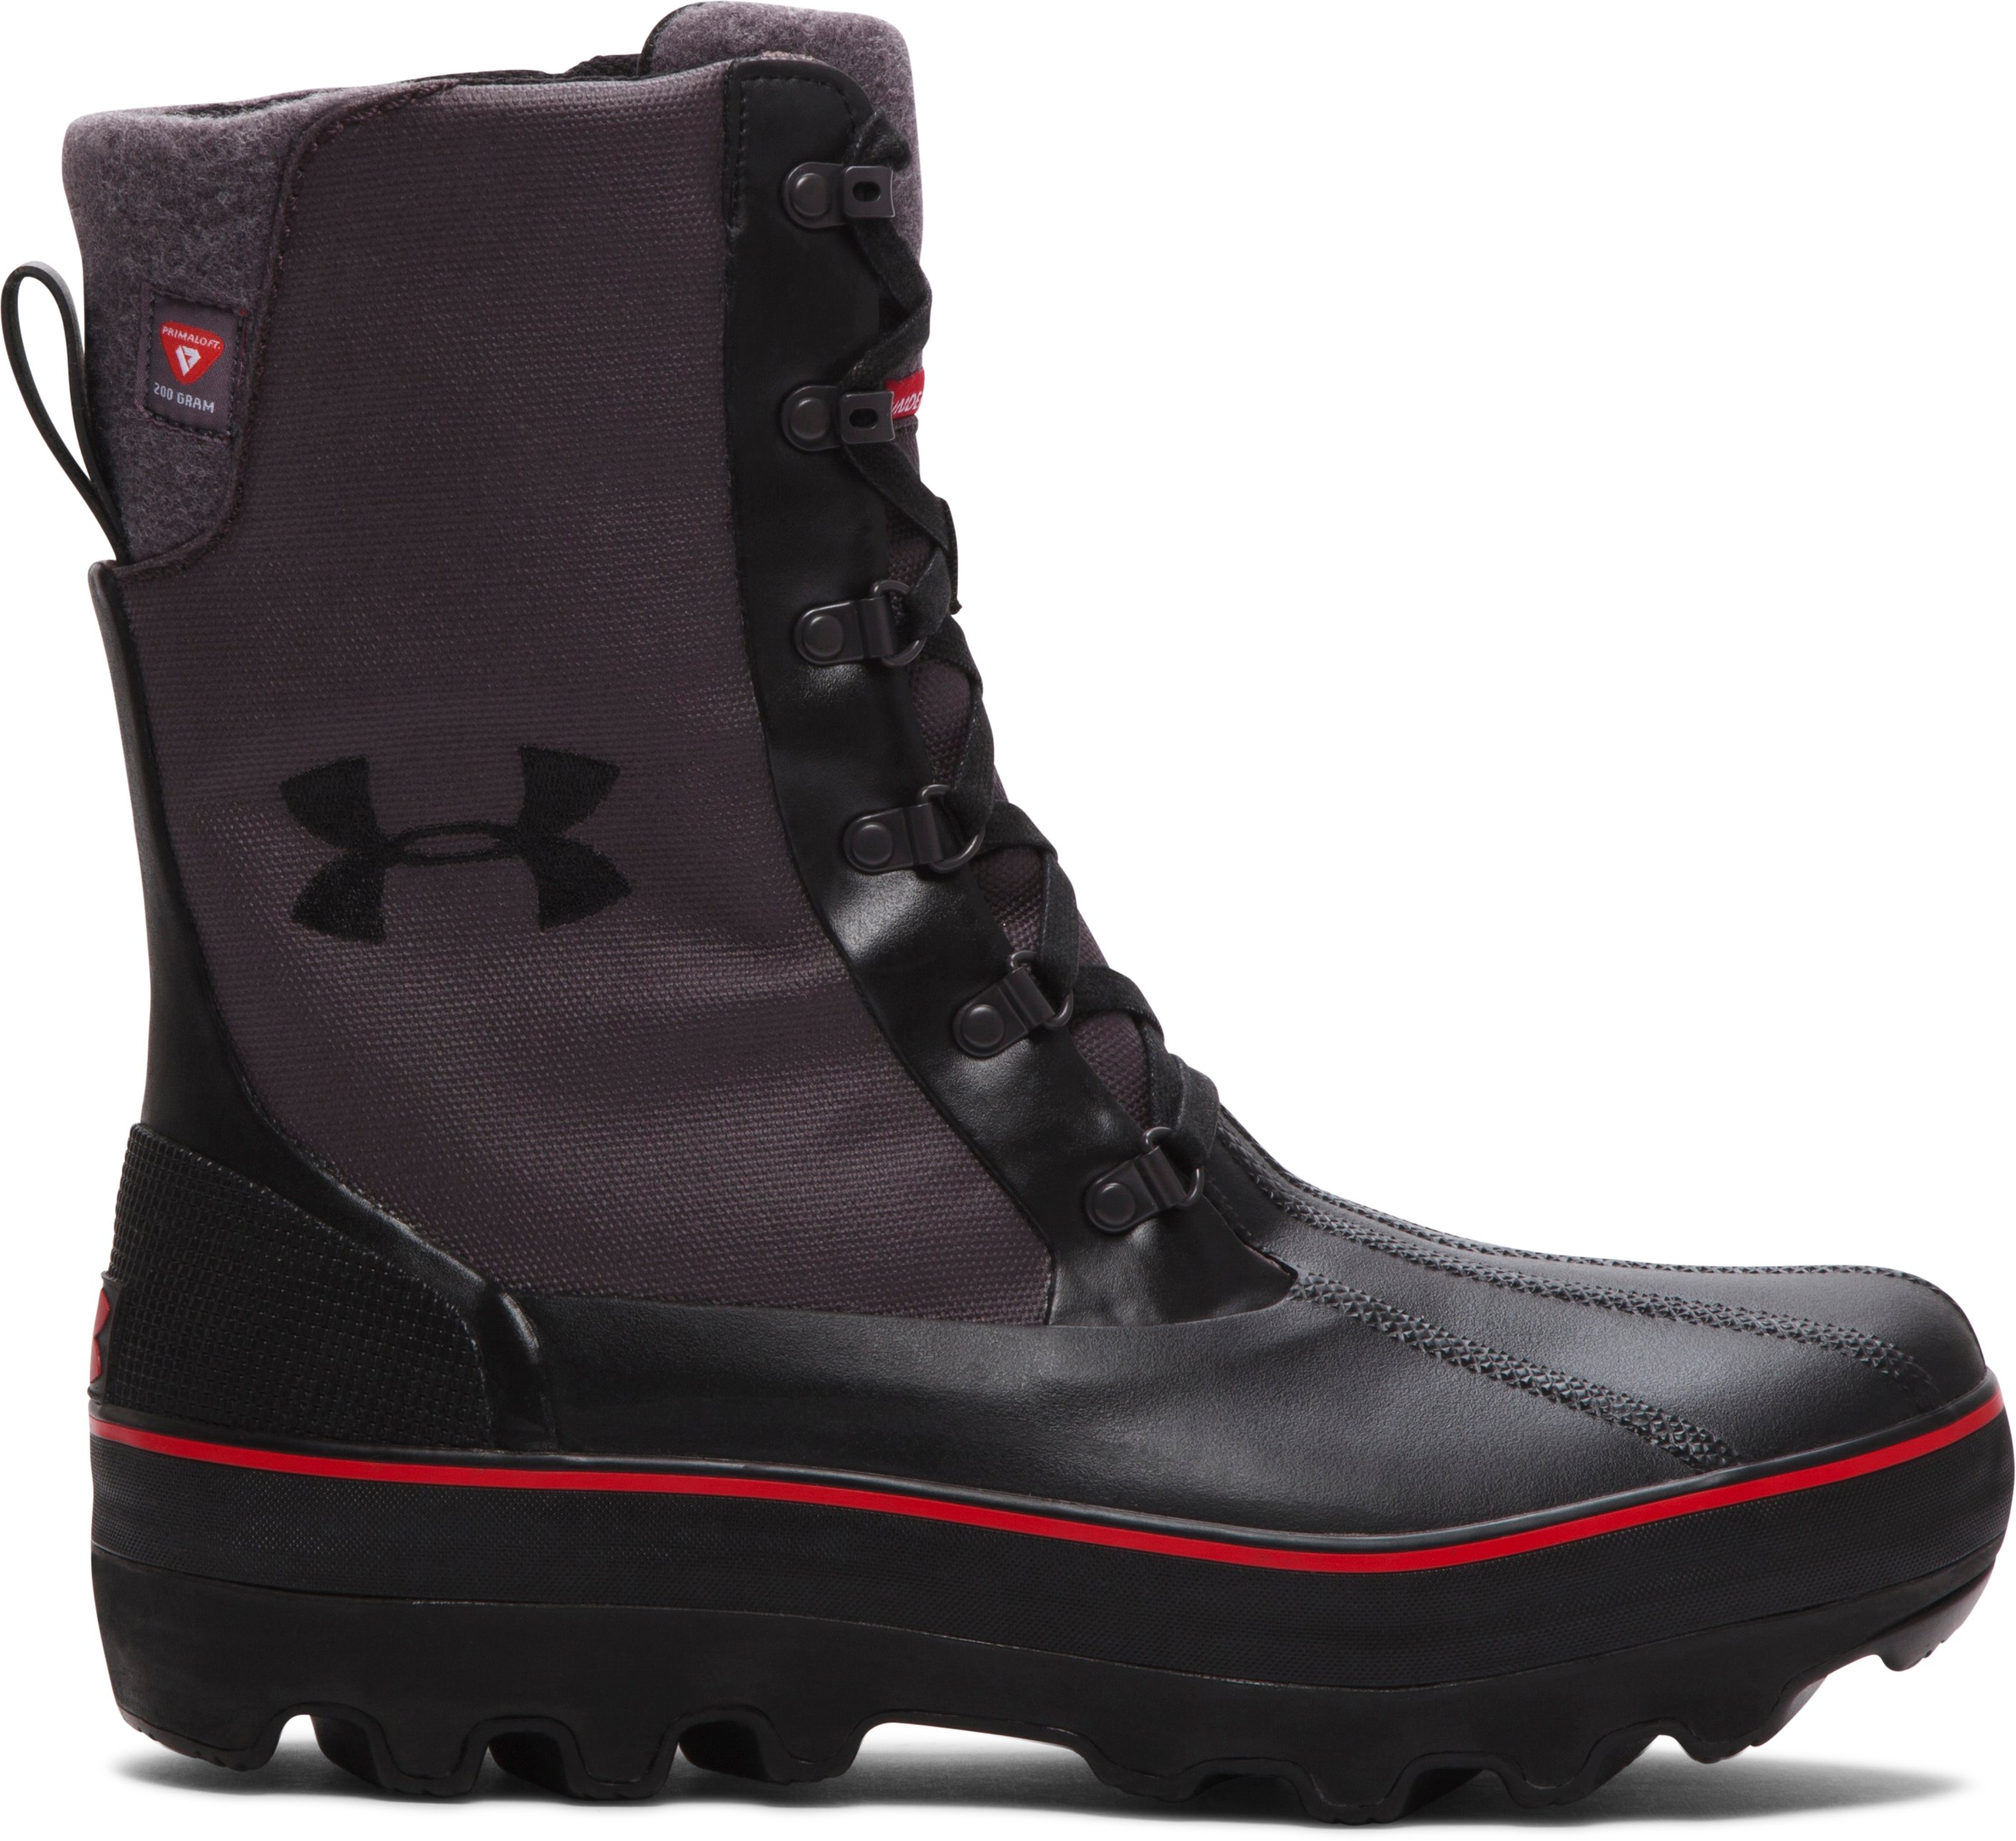 boots for winter Men's UA Clackamas 200 Boots BEST <strong>WINTER</strong> BOOTS EVER!